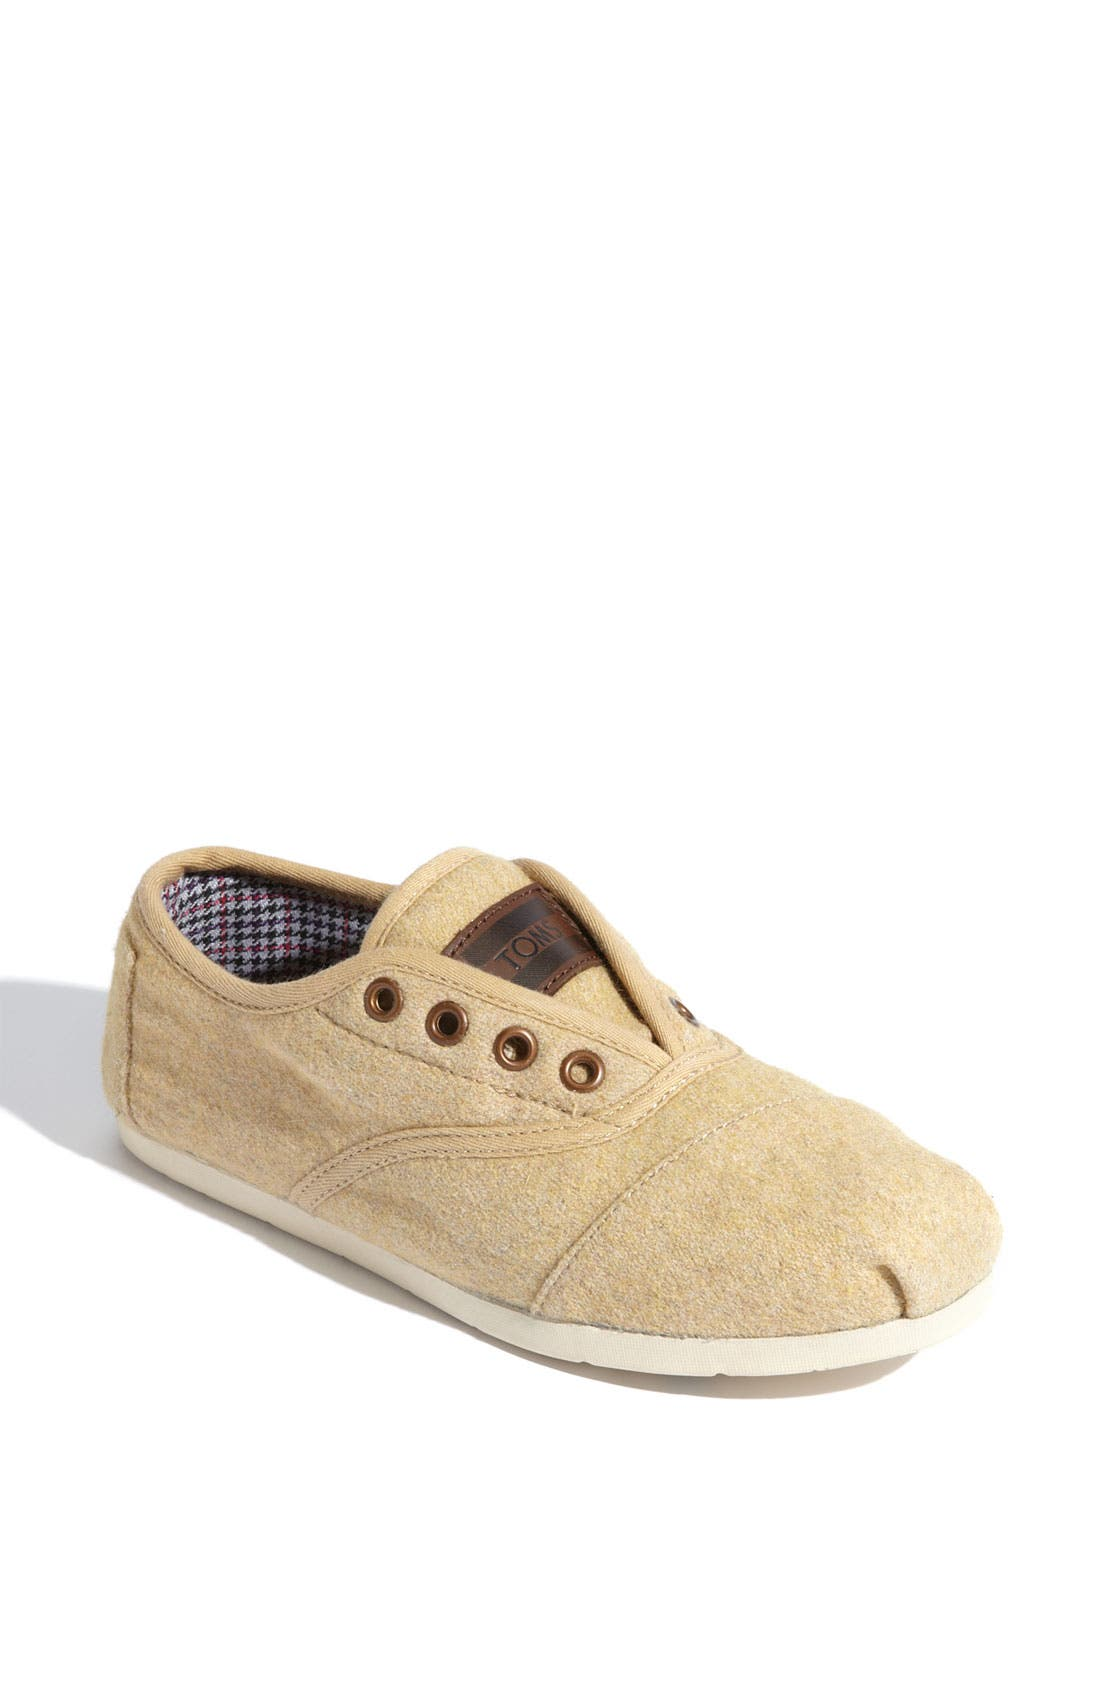 Alternate Image 1 Selected - TOMS 'Cordones' Woolen Sneaker (Women)